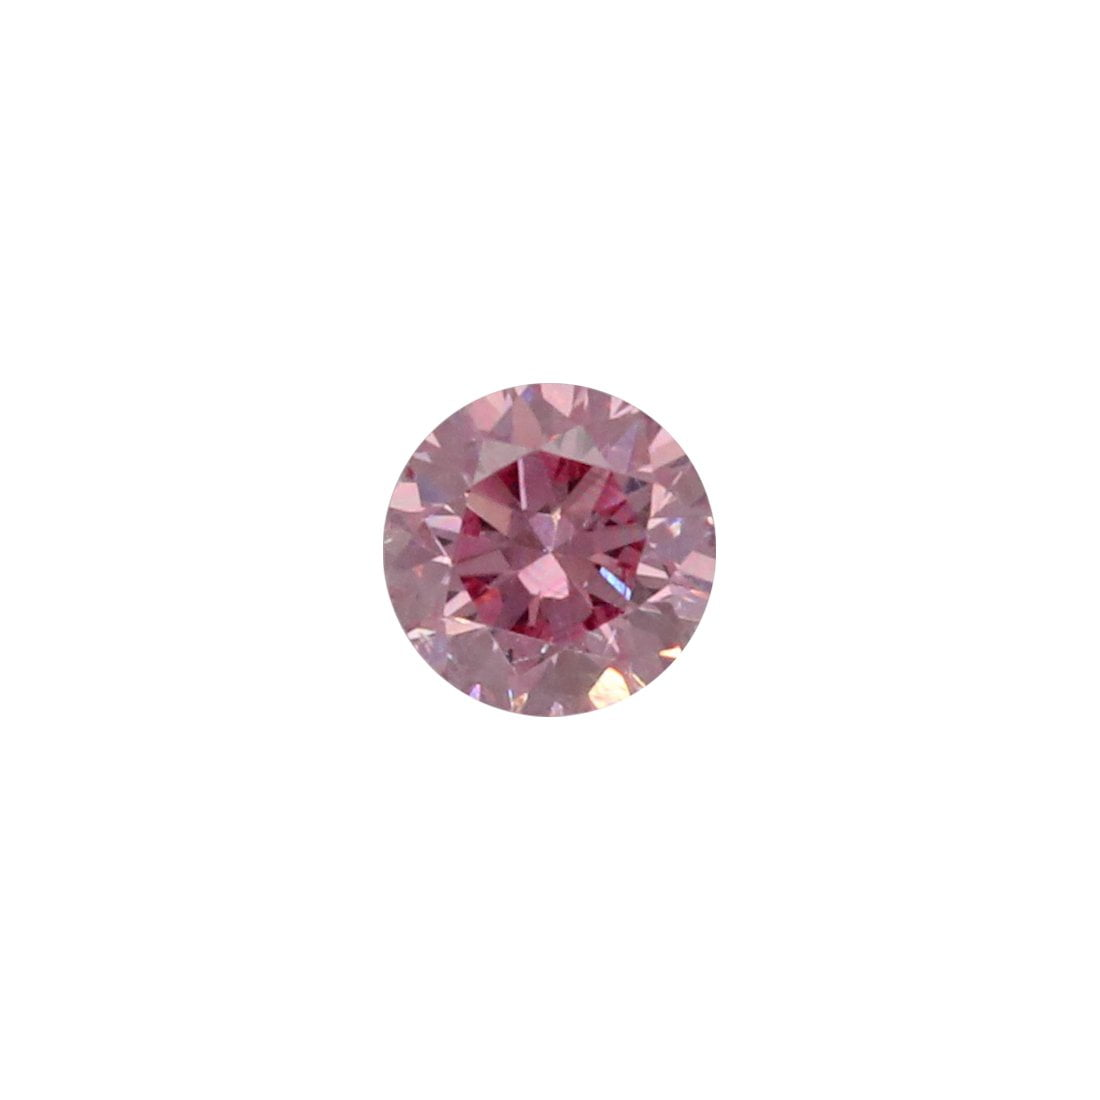 0.08ct Natural Fancy Intense Purplish Pink, 5PP Argyle Diamond